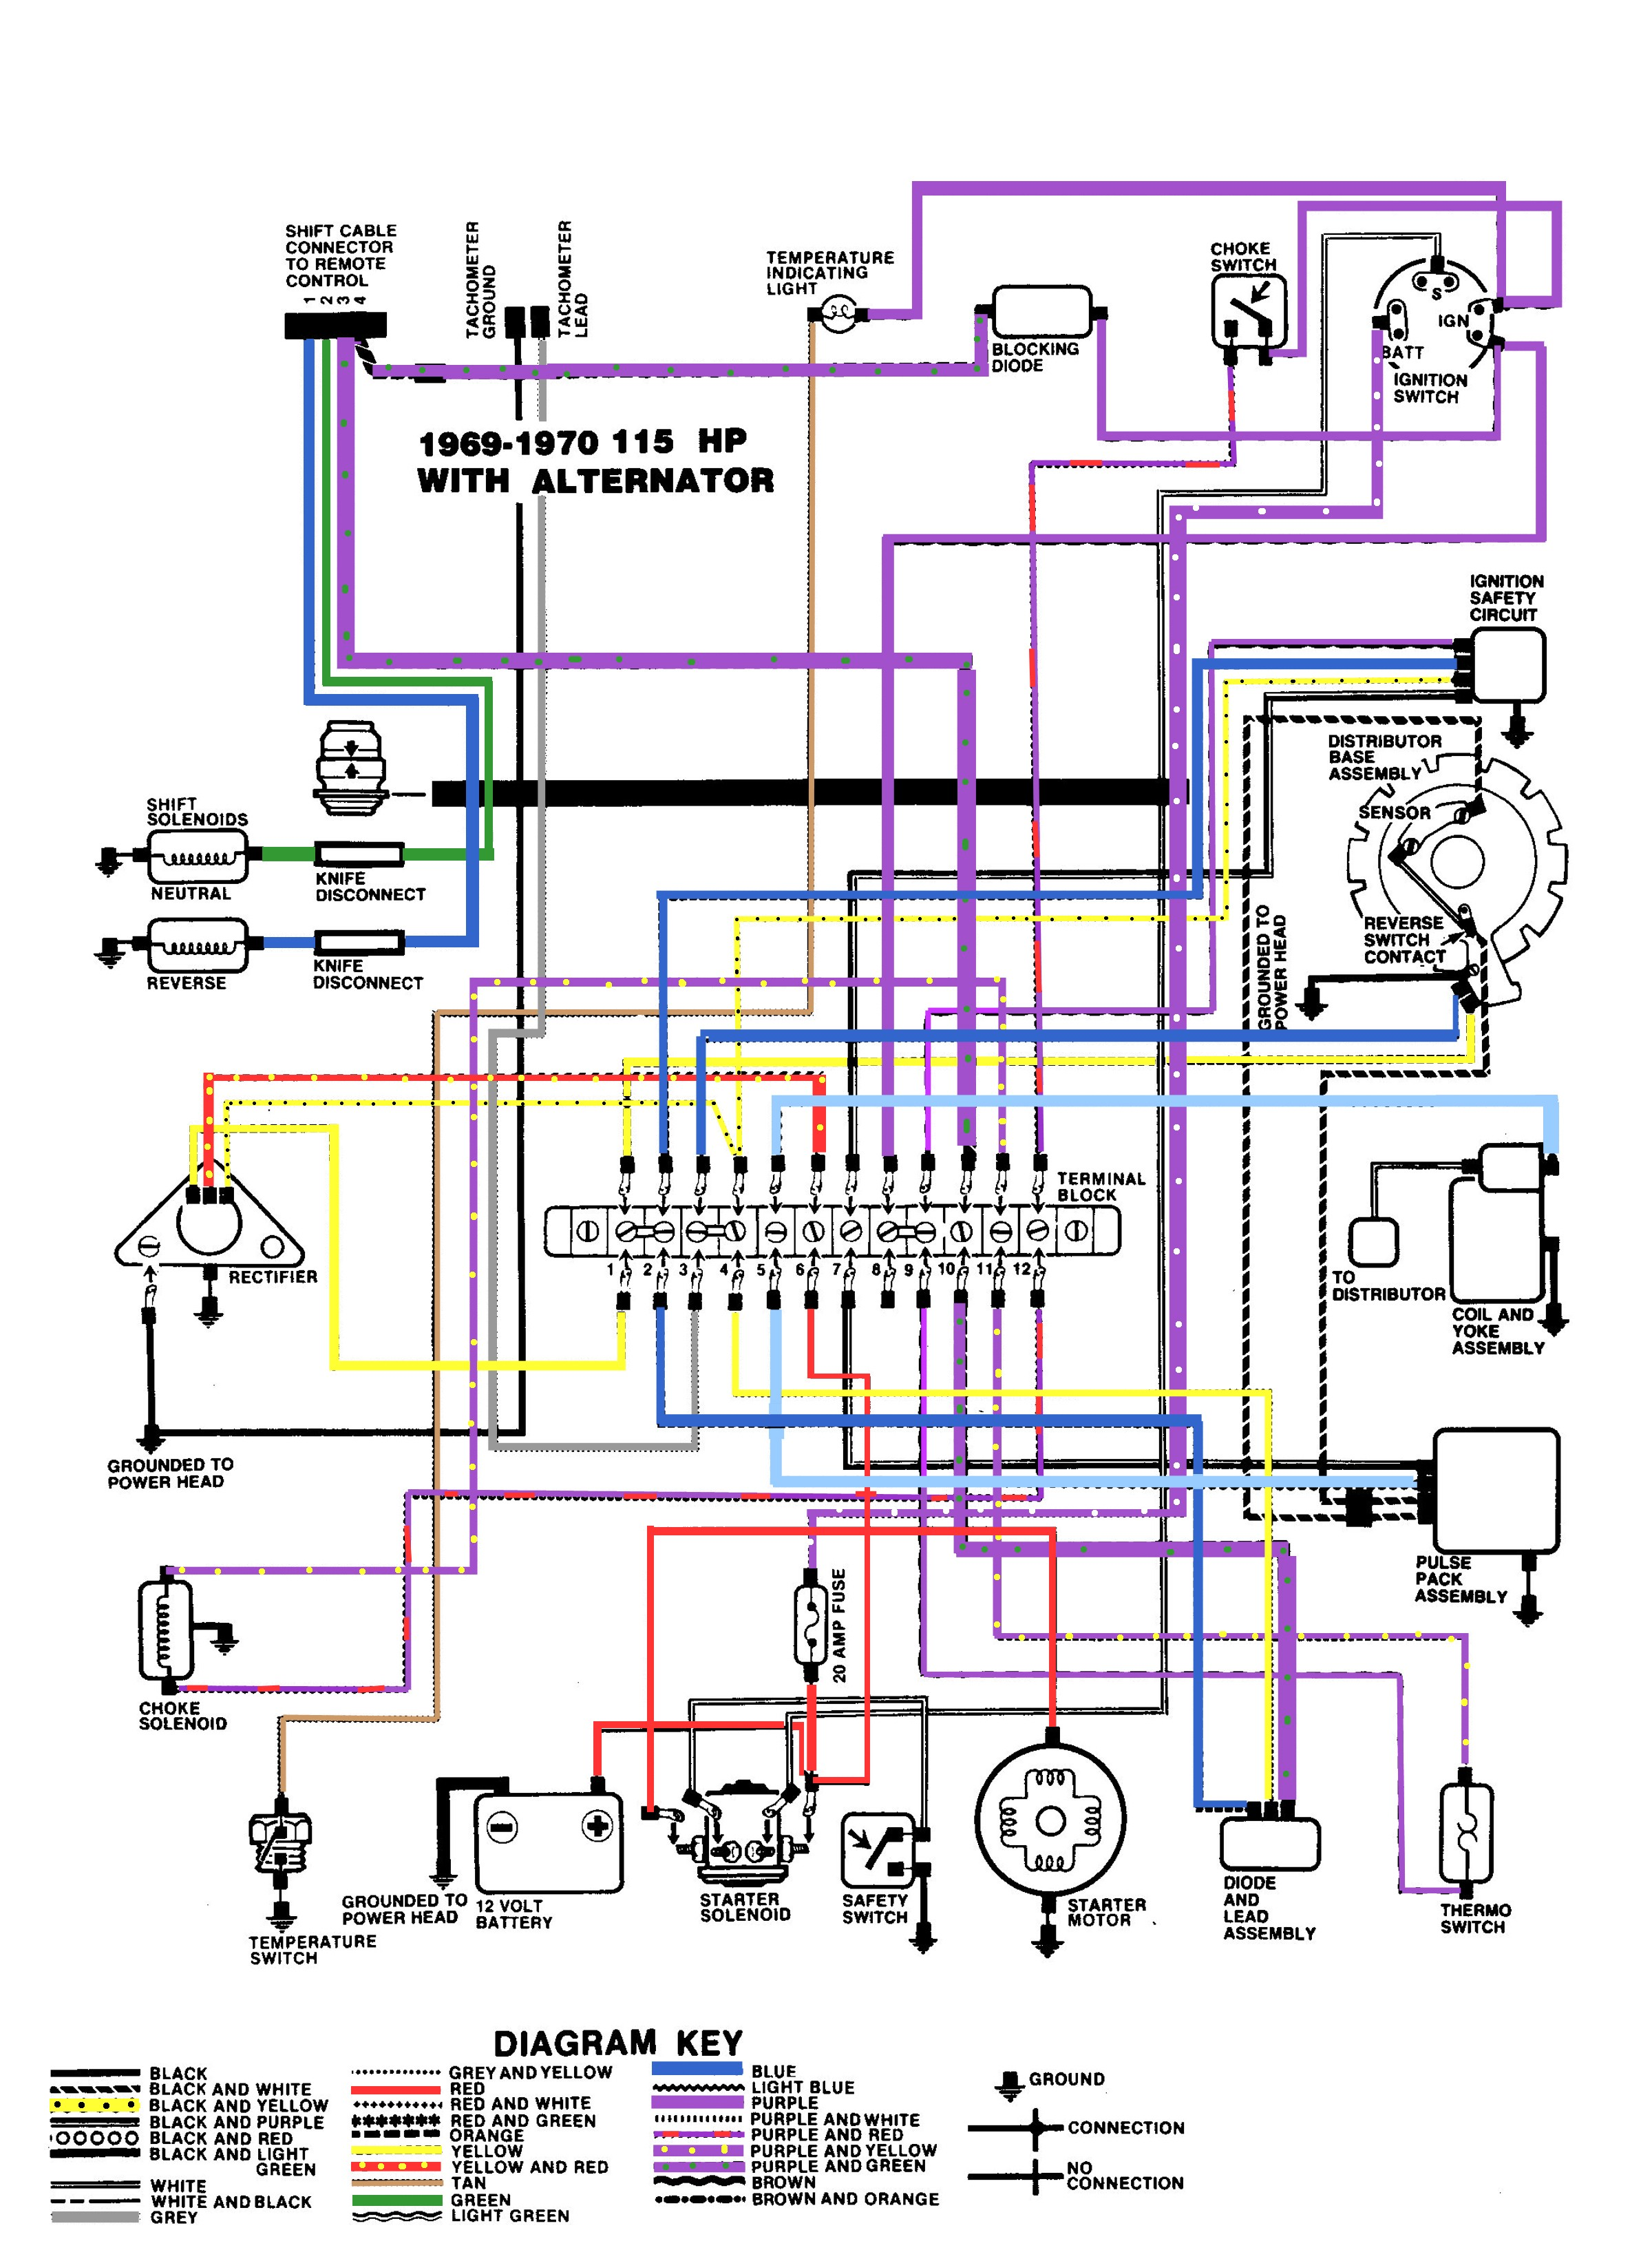 Ignition Coil Condenser Wiring Diagram mastertopforum